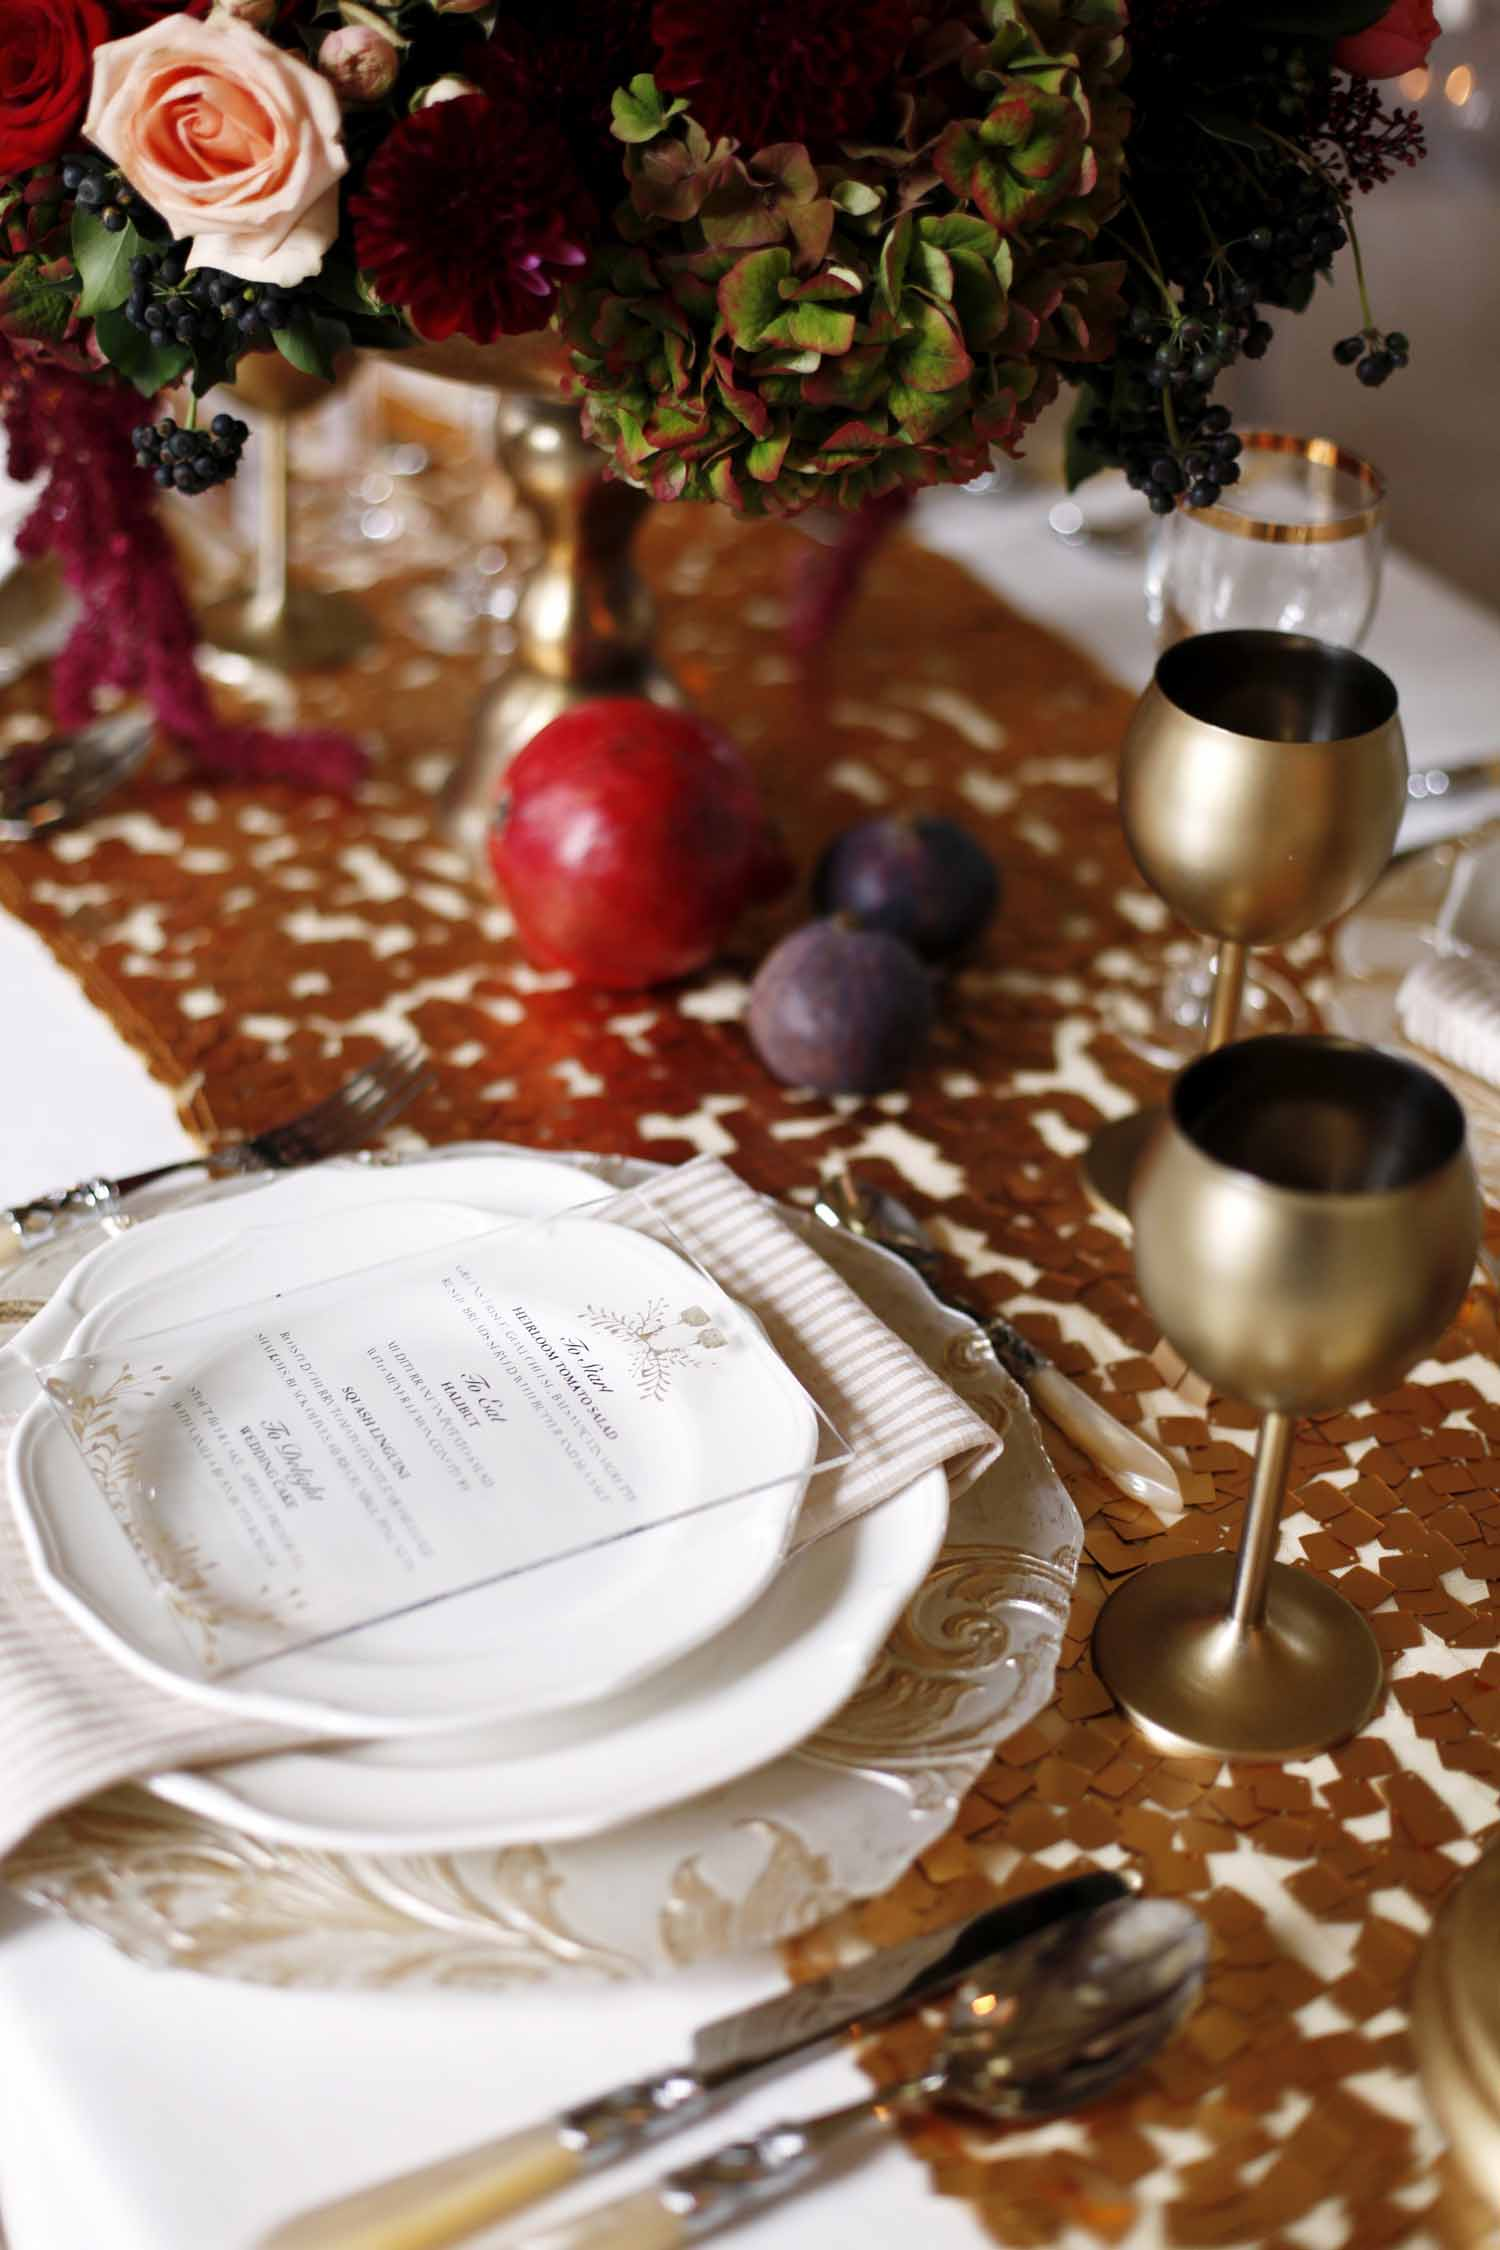 Elegant place setting with gold rimmed plates, gold water goblet, lucite menu card for Wedding Style Shoot in Kloster Eberbach, Germany, designed by Flora Nova Design, Seattle